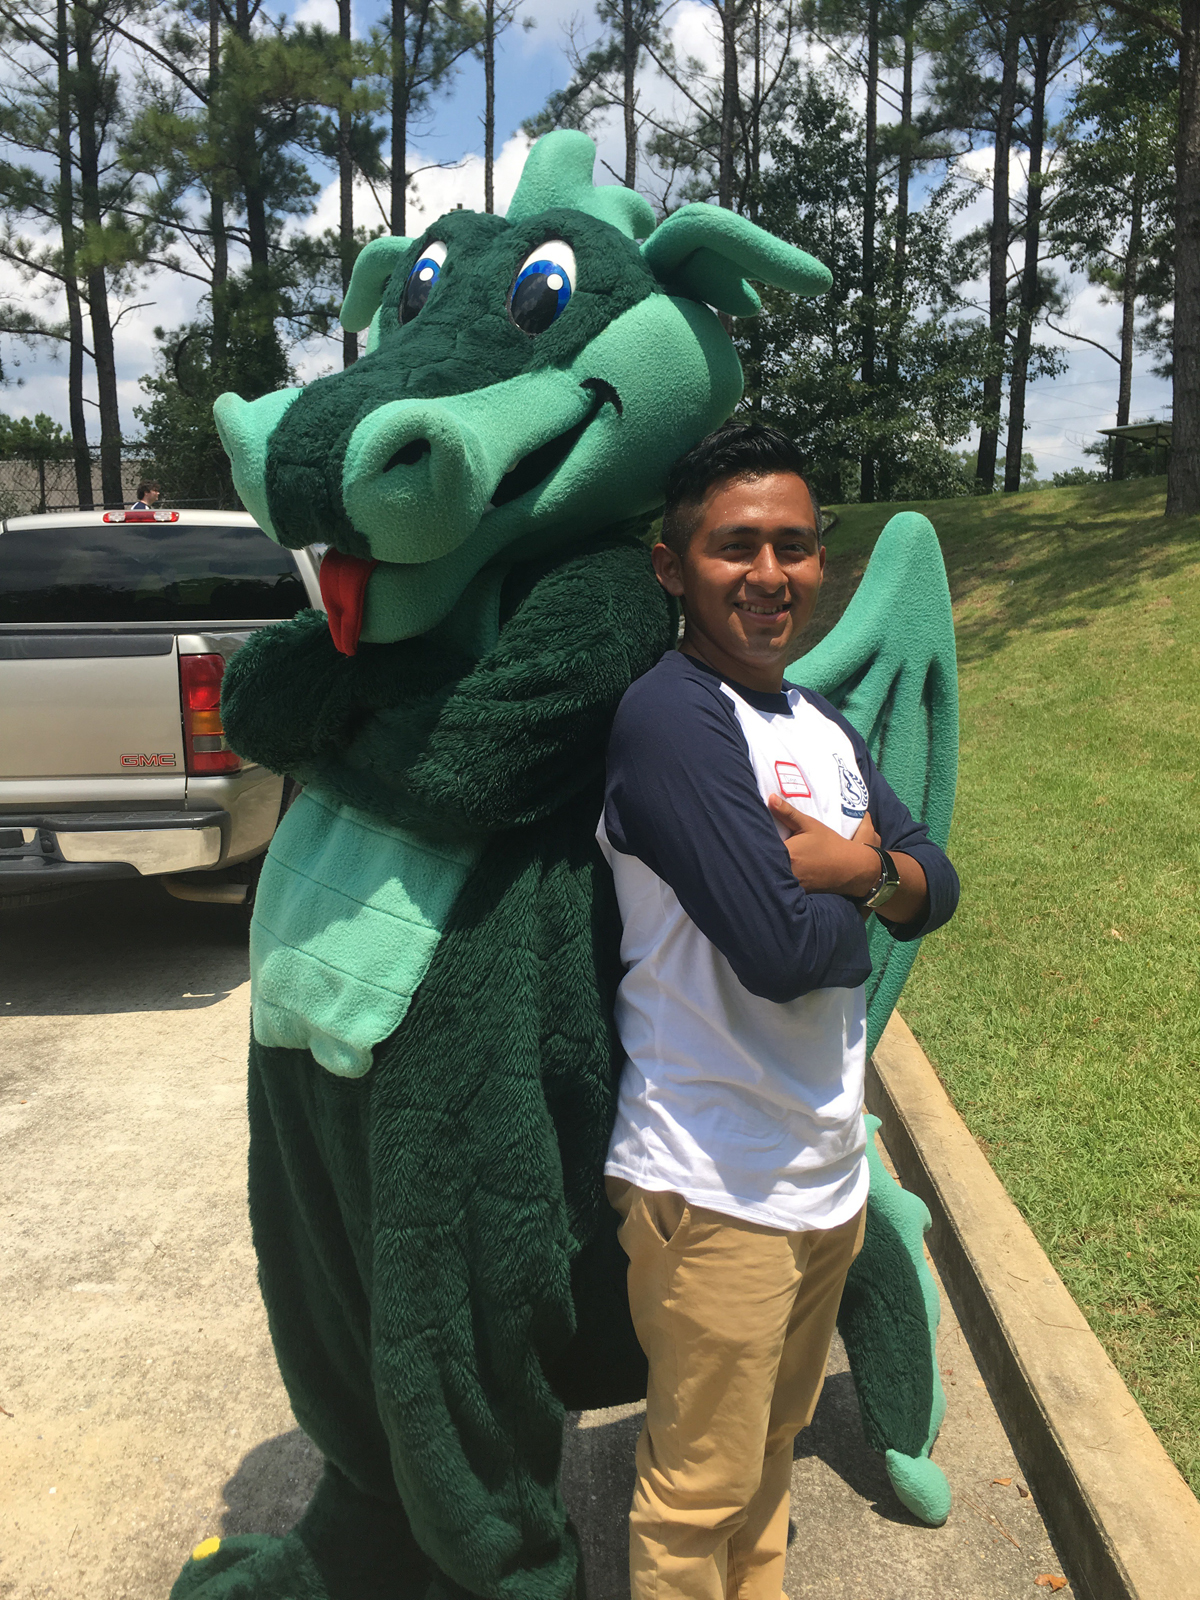 Diego Pascual is transferring to UAB to pursue a career in Dentistry.